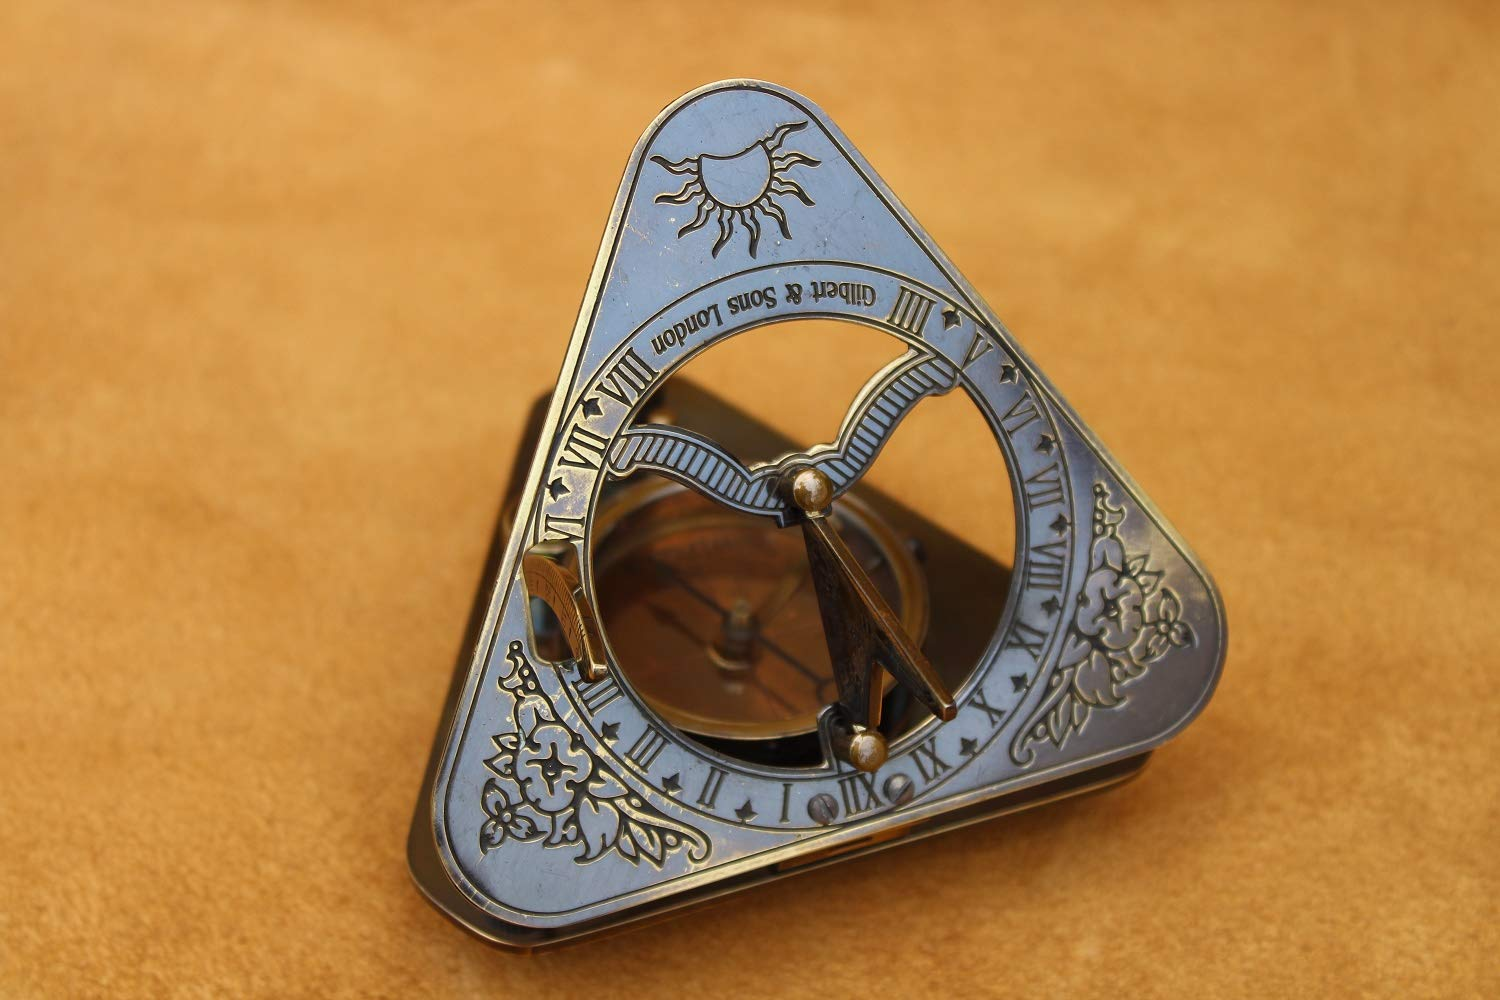 US Handicrafts History Brass Triangle Sundial Compass in Hardwood Box. by US Handicrafts (Image #2)